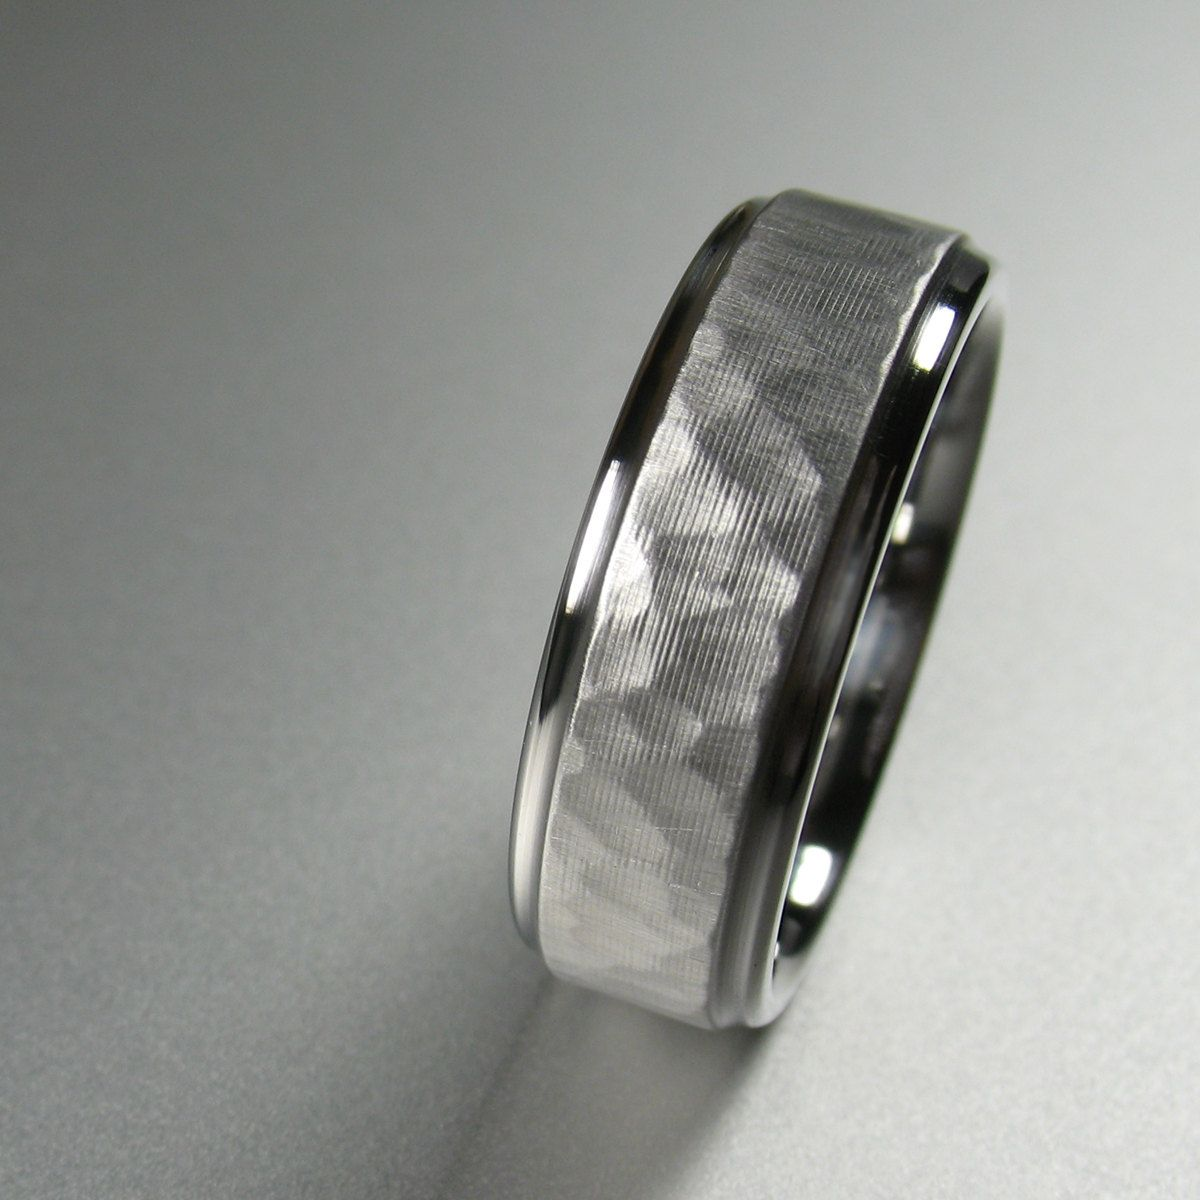 Wedding band I love the hammered metal and bevel it hides